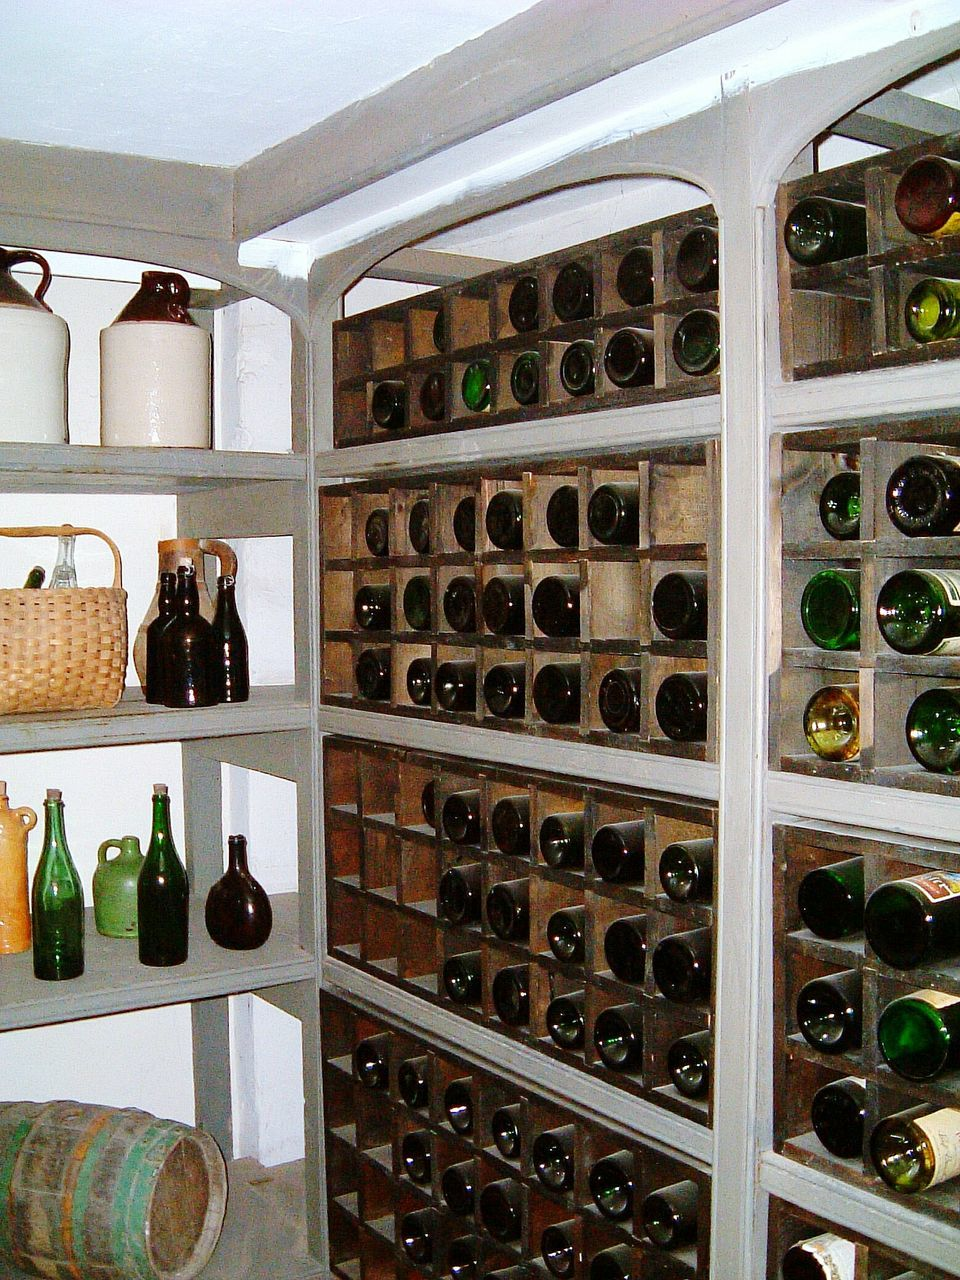 bottle, wine, wine bottle, shelf, indoors, wine cellar, wine rack, alcohol, in a row, large group of objects, winery, storage compartment, drink, variation, no people, arrangement, old-fashioned, cellar, winemaking, day, home showcase interior, close-up